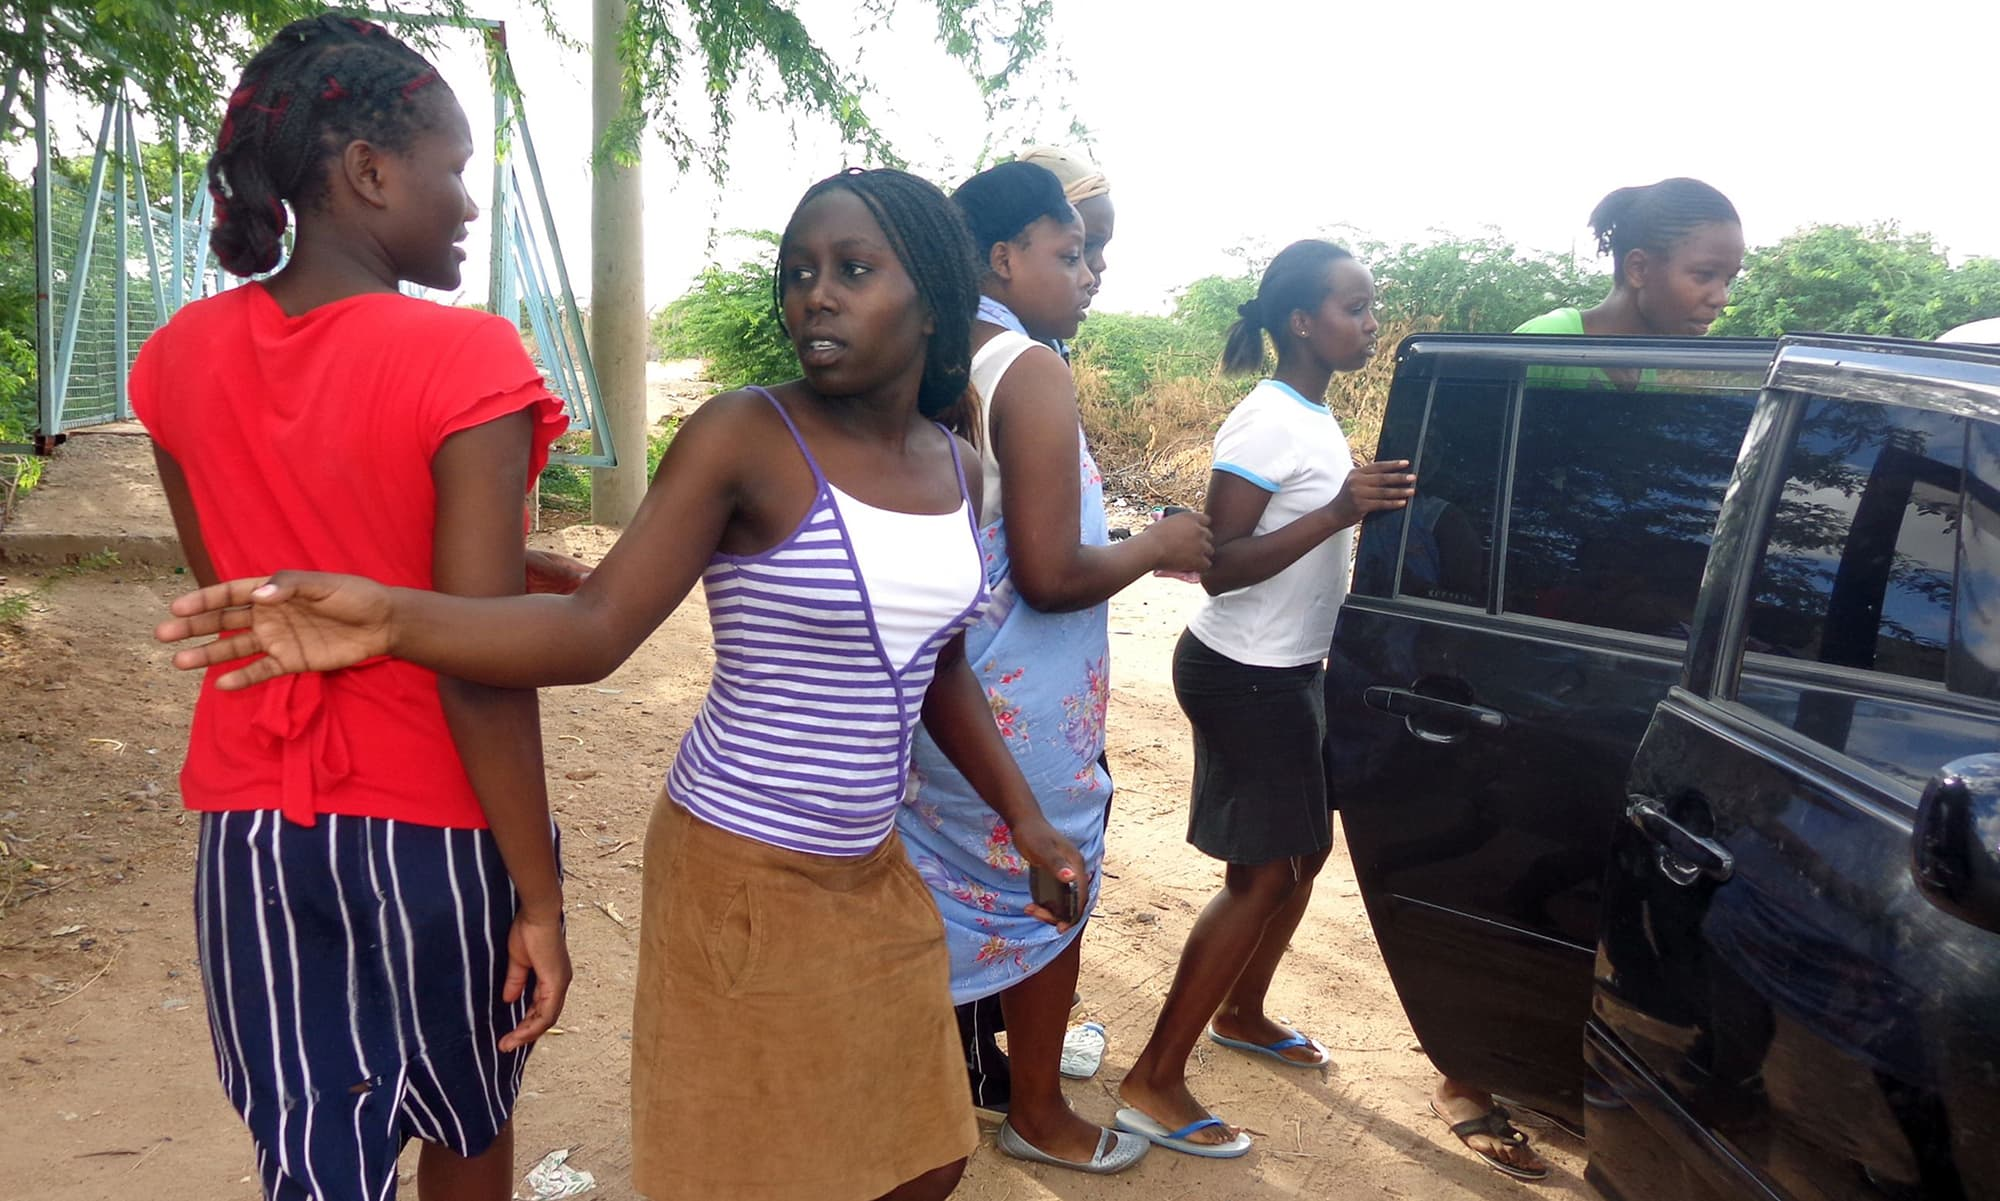 Students of the Moi University leave after escaping an attack. -AFP